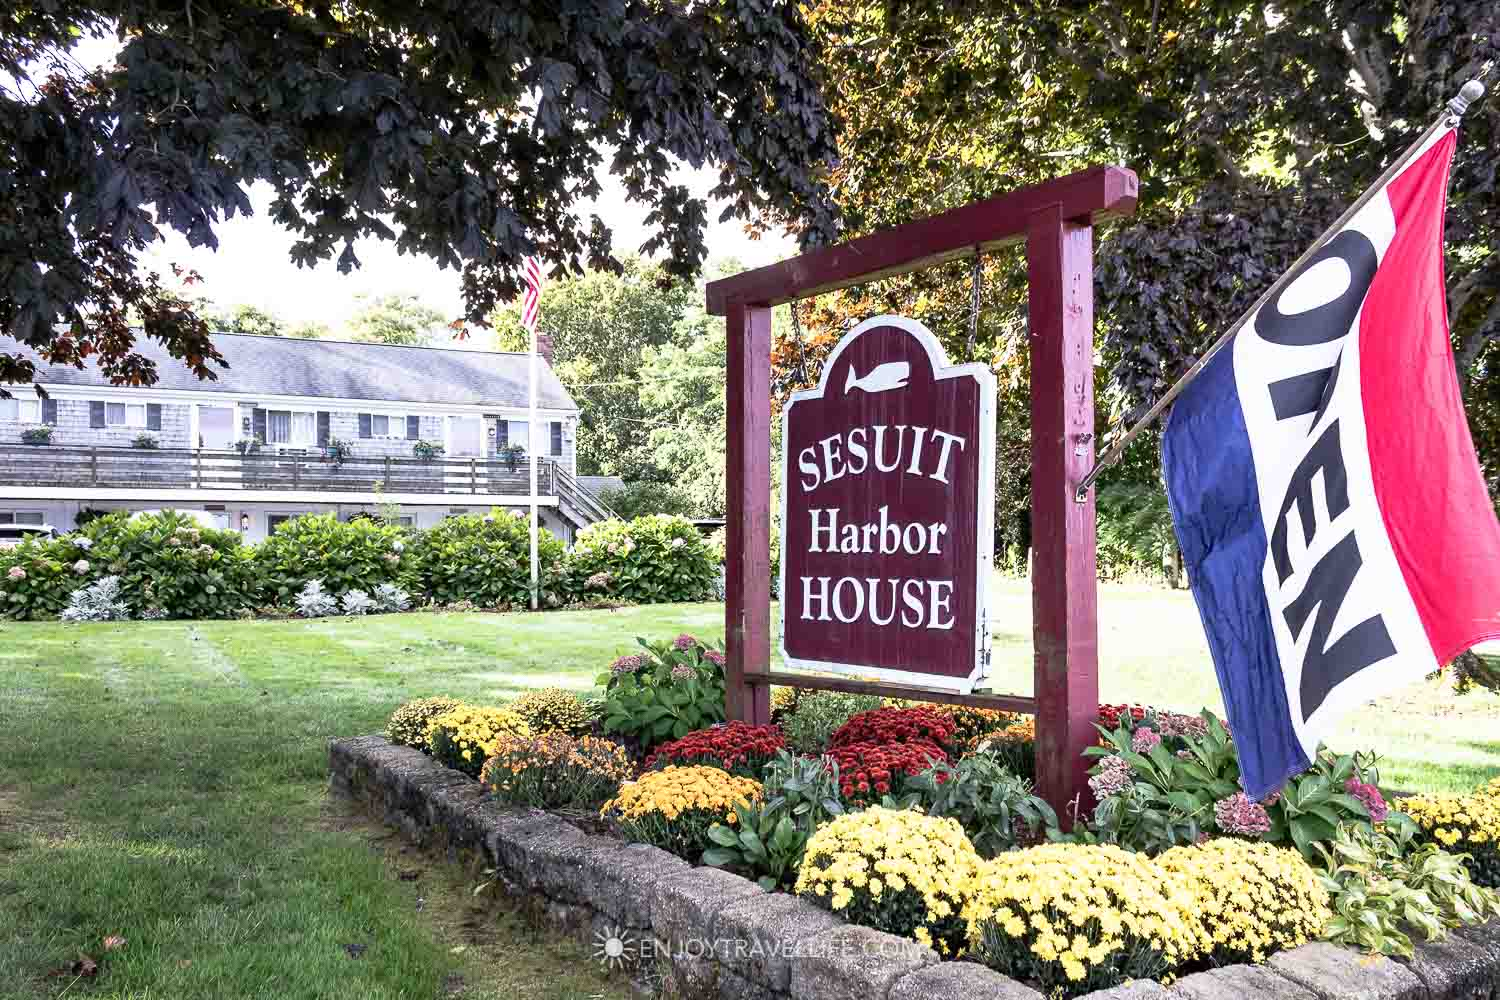 Sesuit Harbor House in Dennis MA - Cape Cod Family Resort